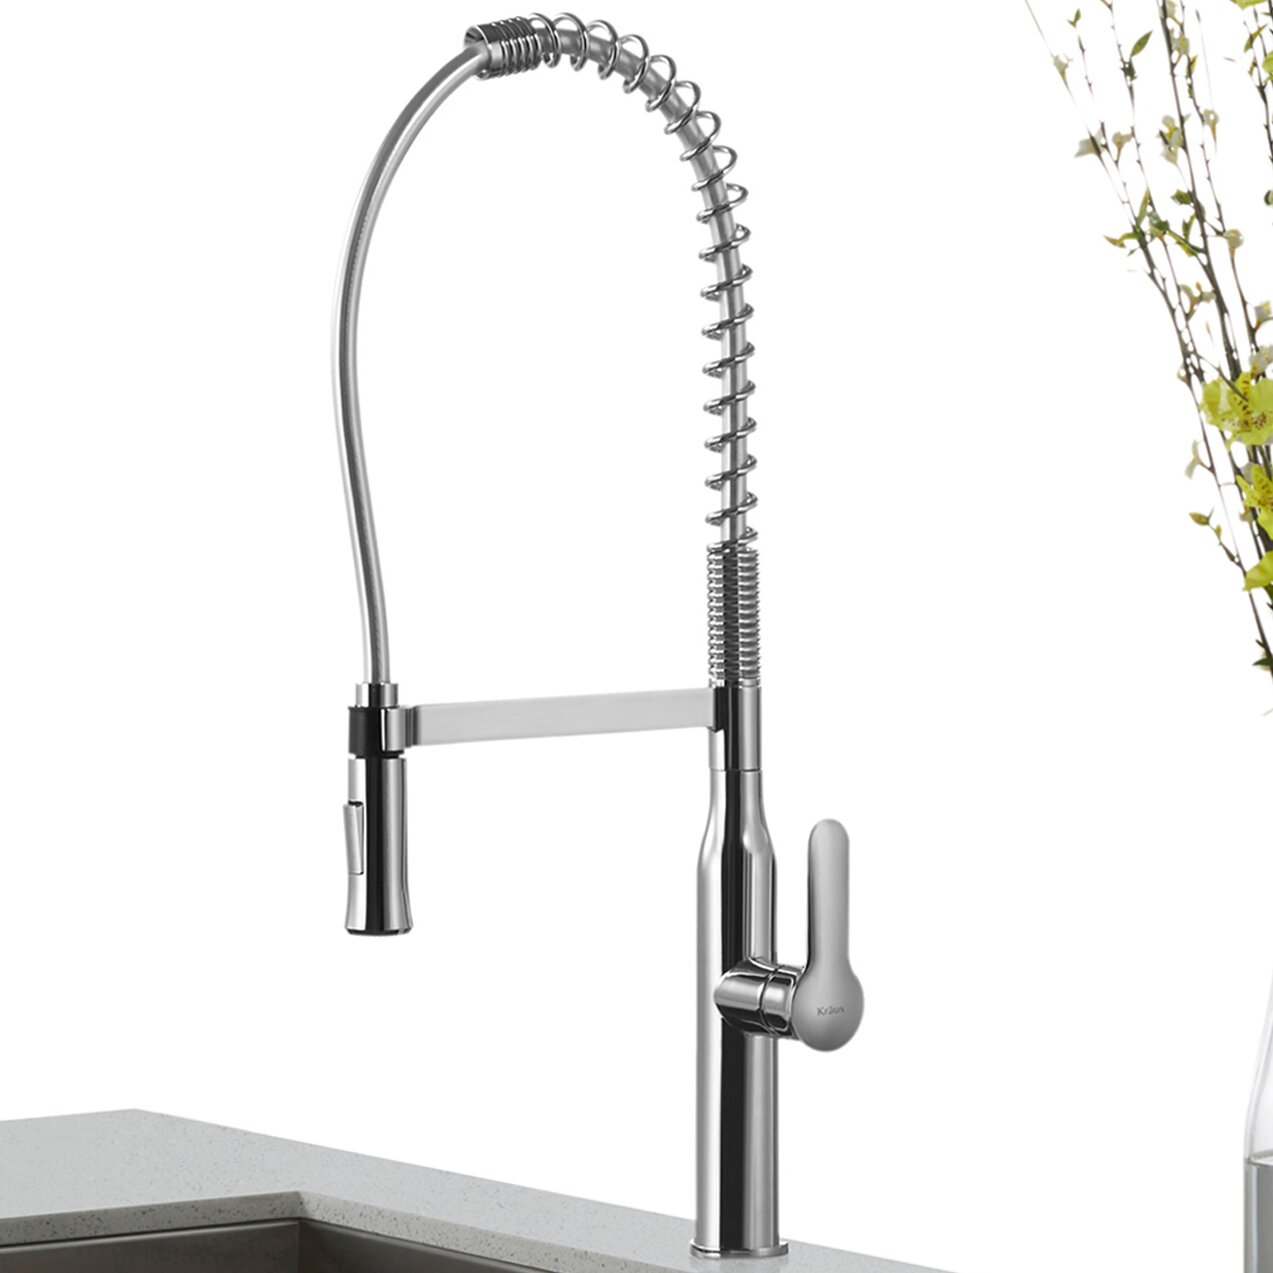 nola single lever commercial style kitchen faucet vigo commercial style chrome kitchen faucet remodelista